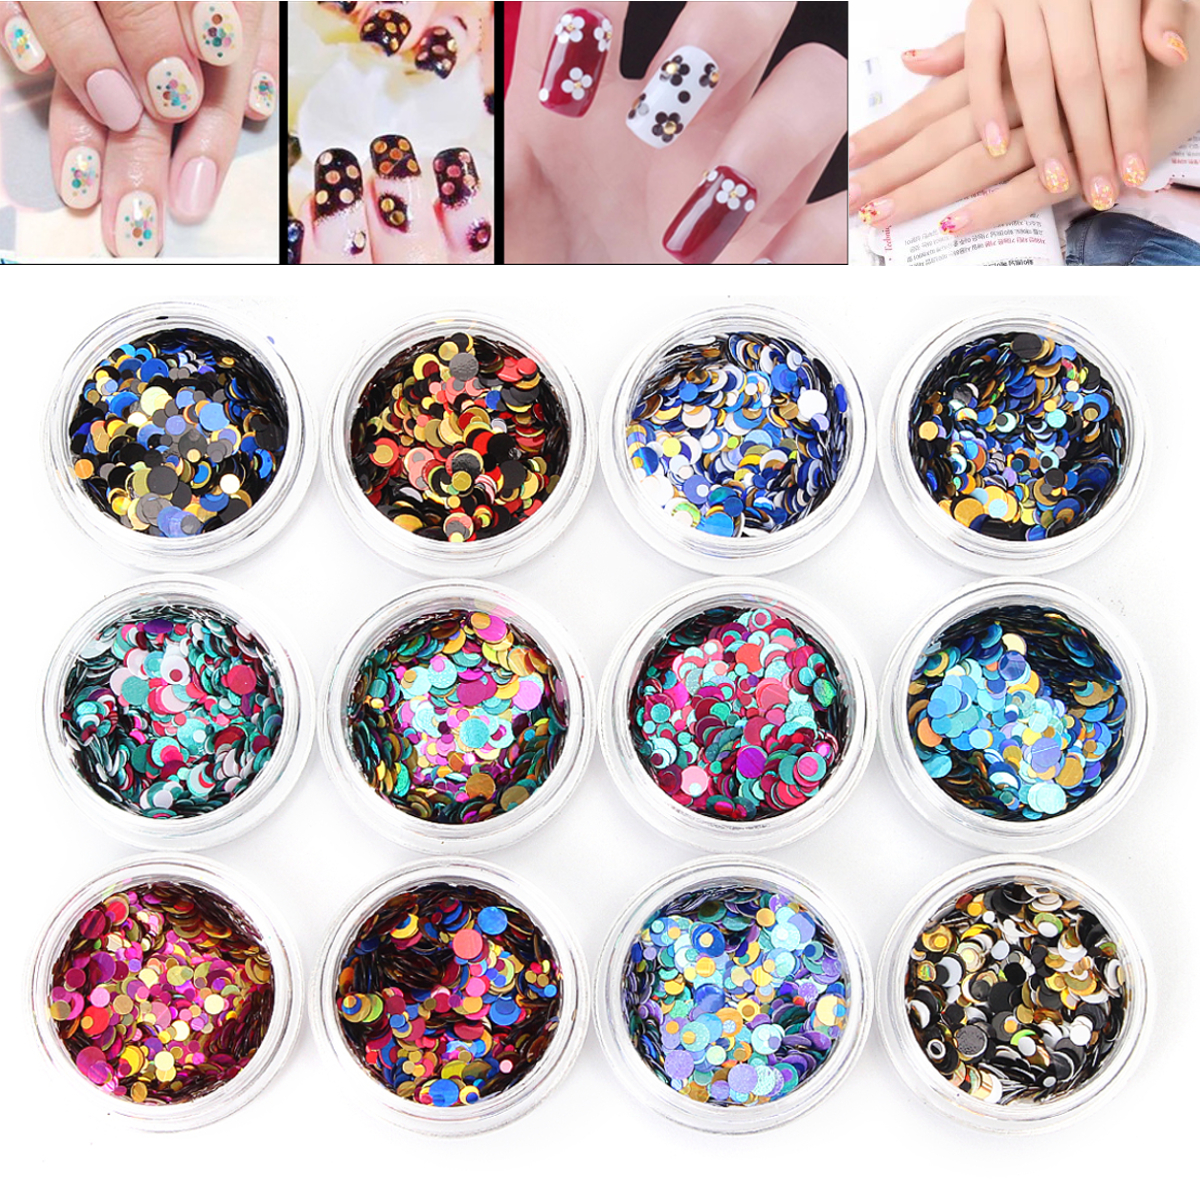 12pcs Multicolor Ultra Thin Glitter Sequins Nail Art Decoration Set DIY Manicure Decor